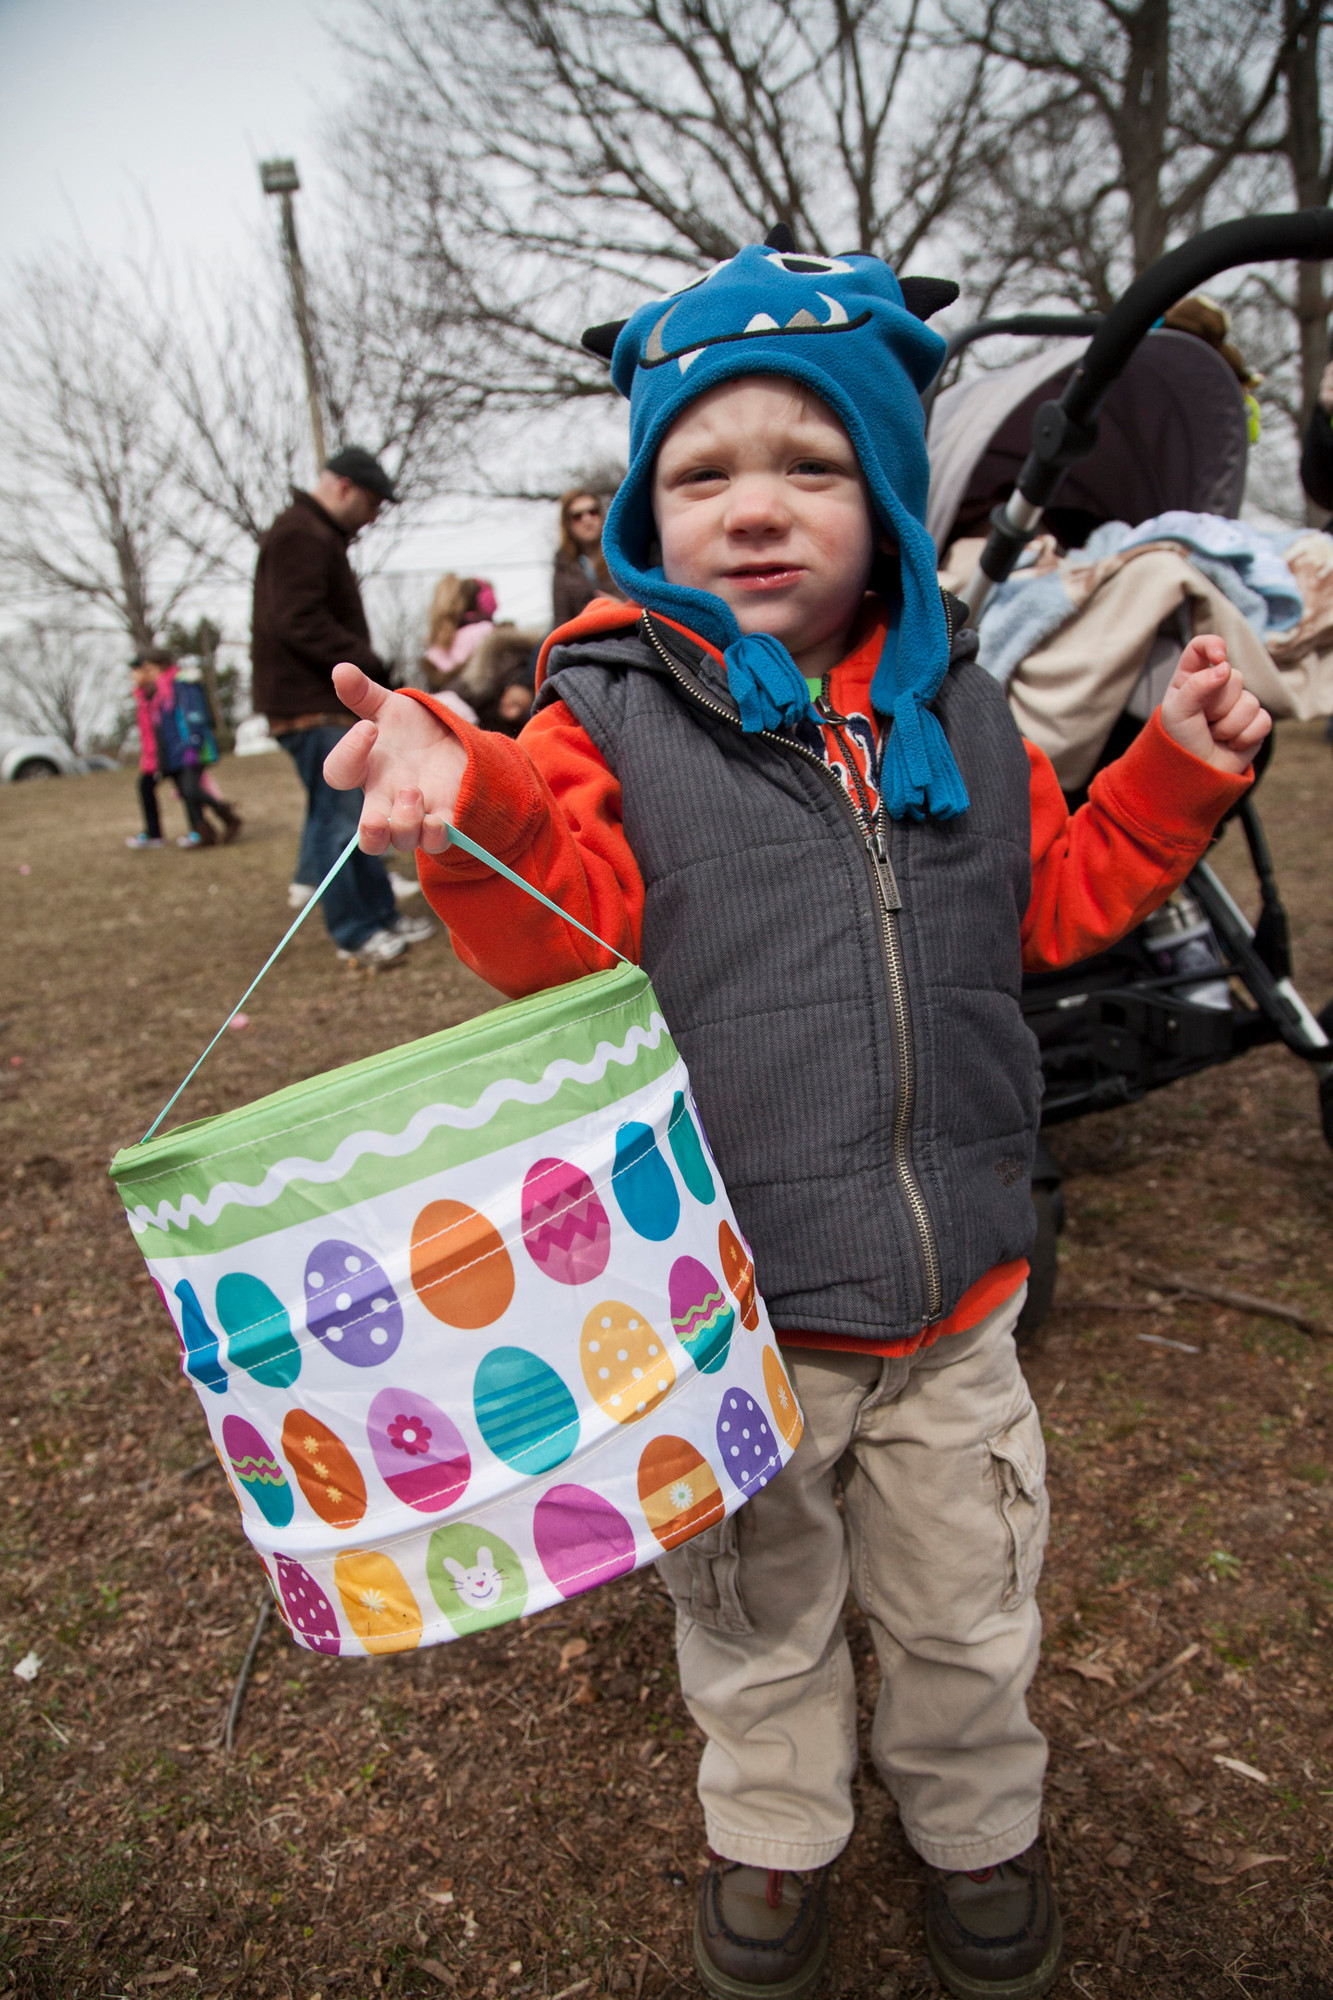 Thomas Moriarty 3, having fun at the easter egg hunt.